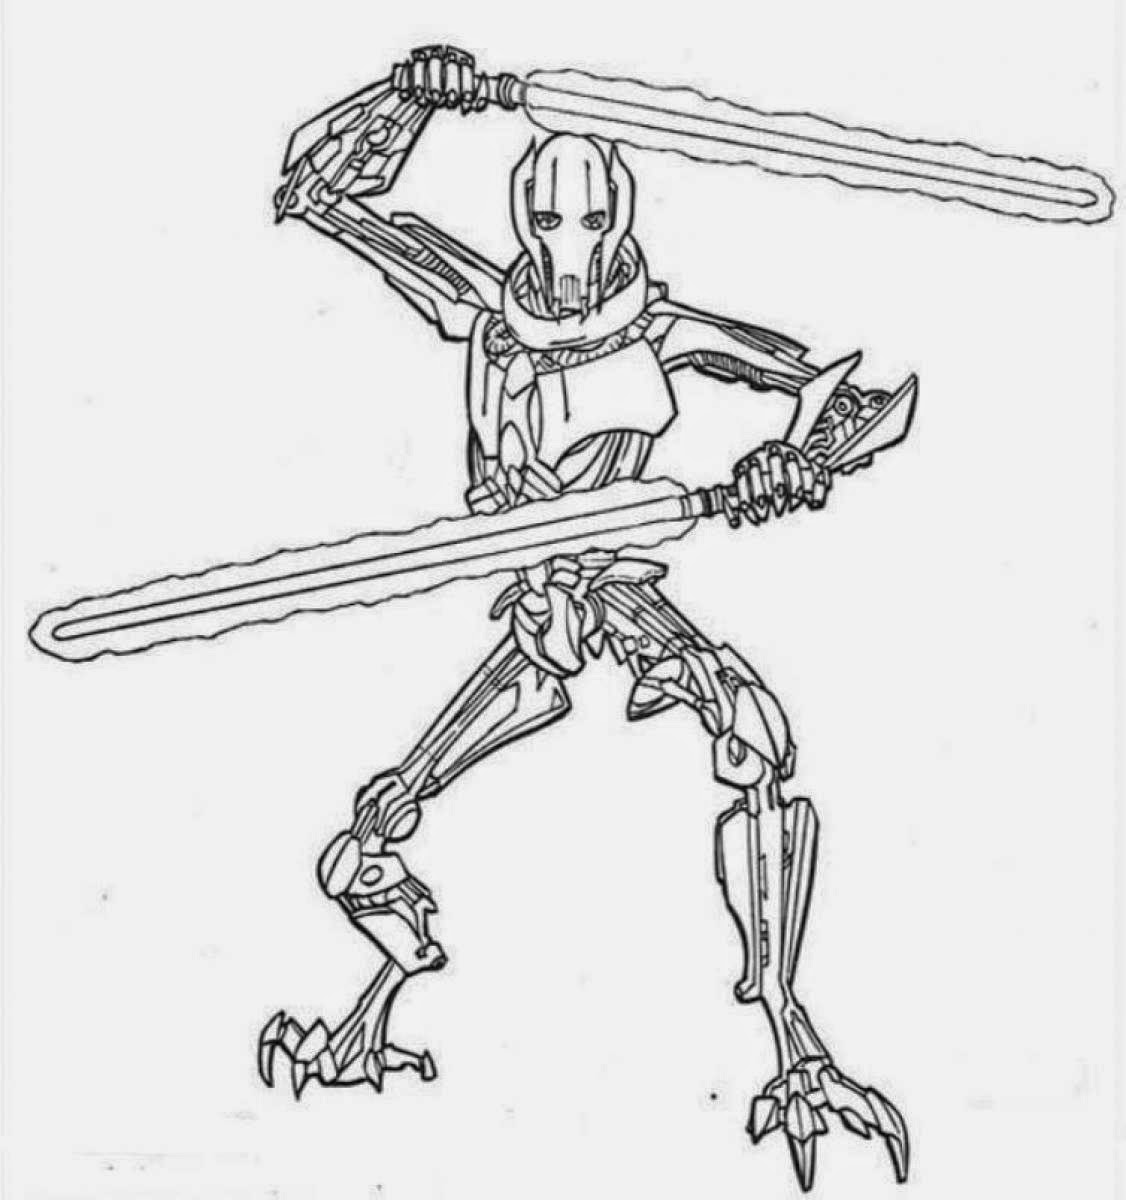 star wars the clone wars pictures to print coloring pages star wars free printable coloring pages print wars star clone pictures the to wars